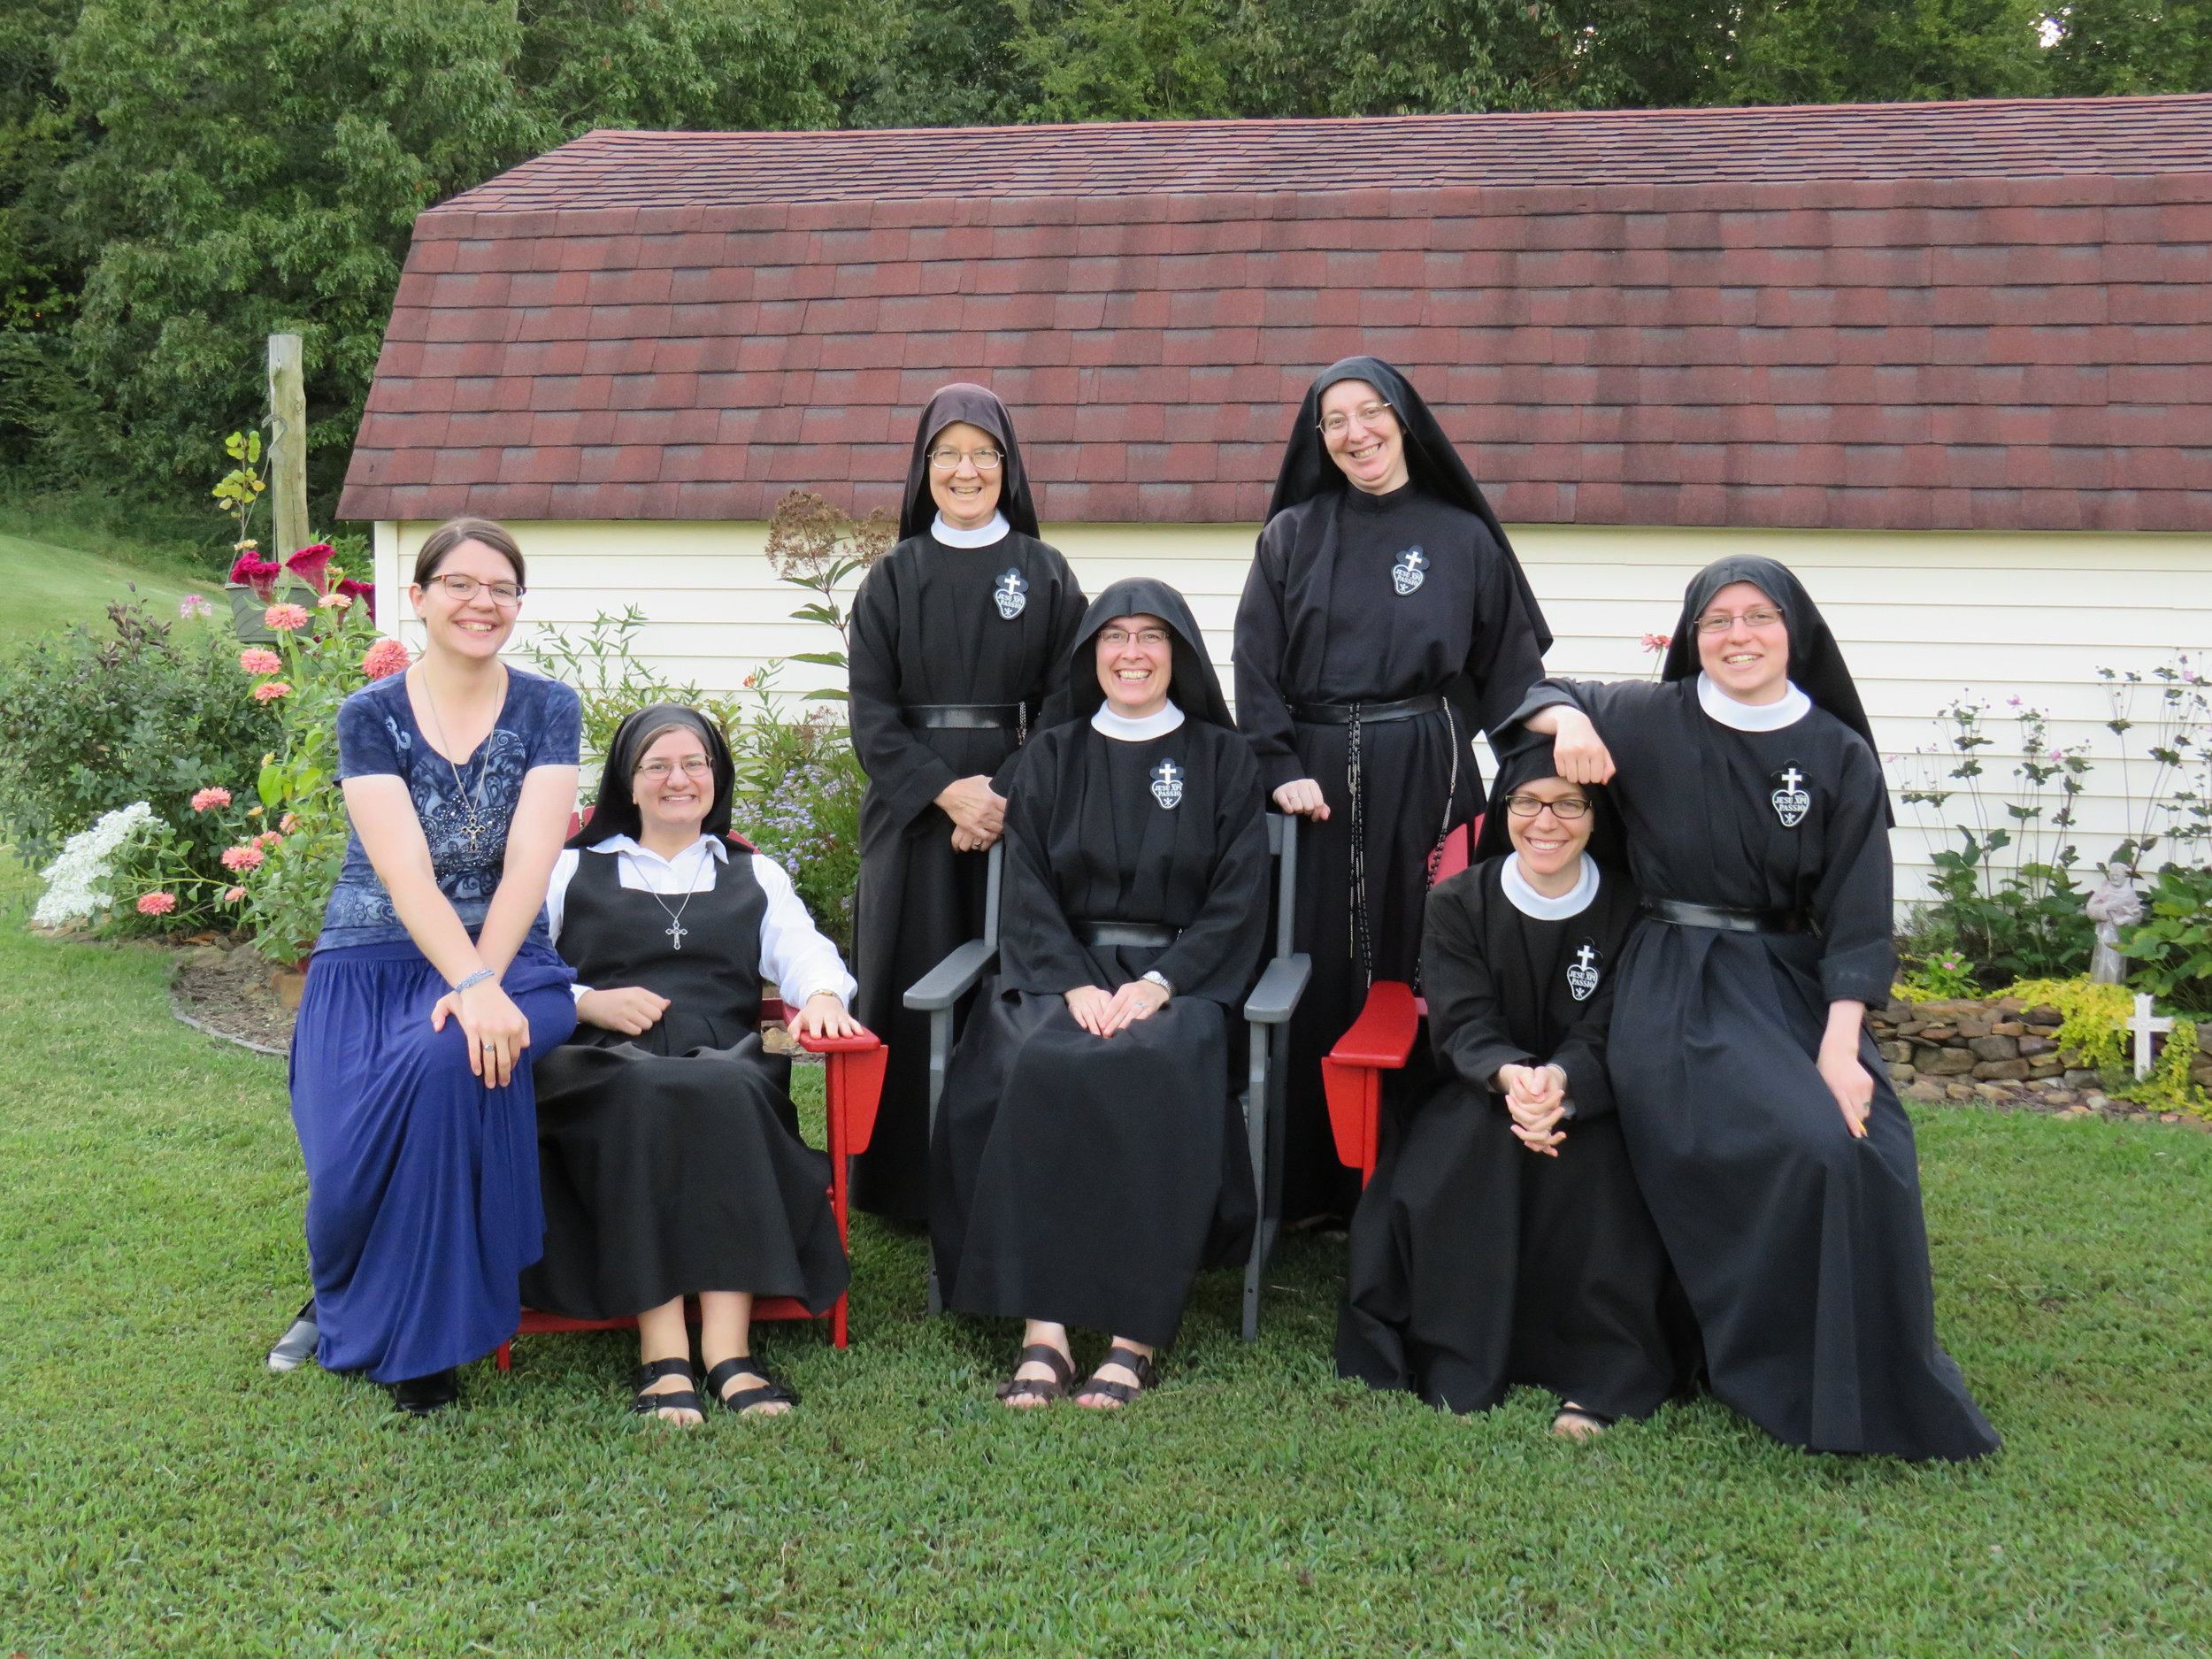 A (mostly) normal photo - aspirant Kathryn, postulant Theresa, Sr. Mary Veronica, Mother John Mary, Sr. Daniela, Sr. Maria Faustina the Long-Suffering Arm Rest, and Sr. Frances Marie.